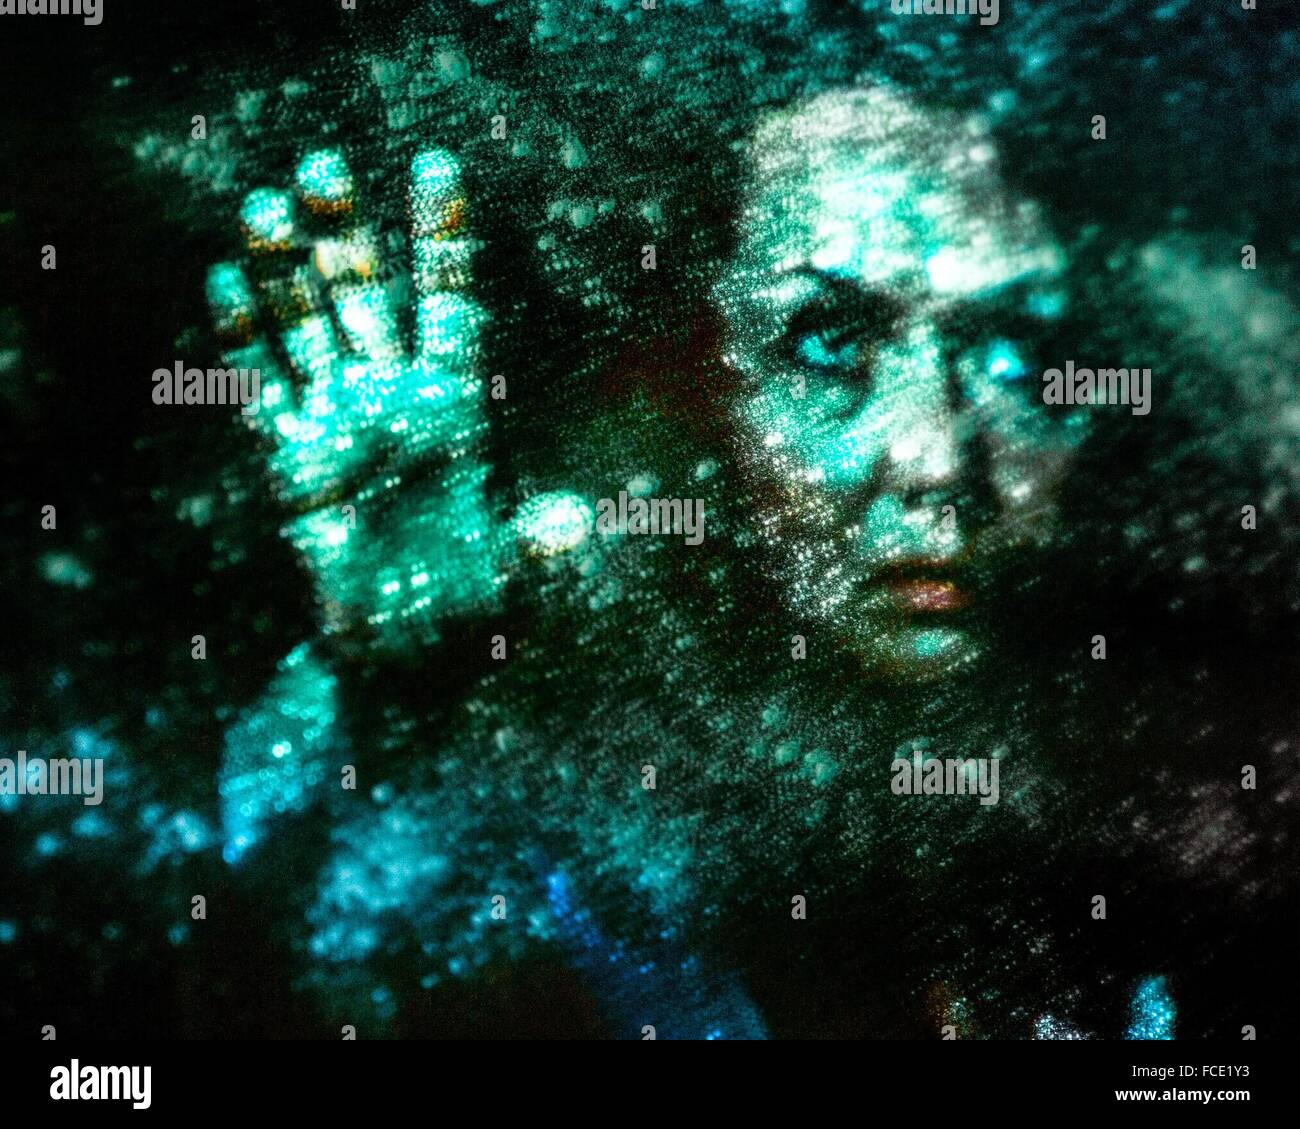 Digital Composite Of Spooky Woman Touching Wall - Stock Image